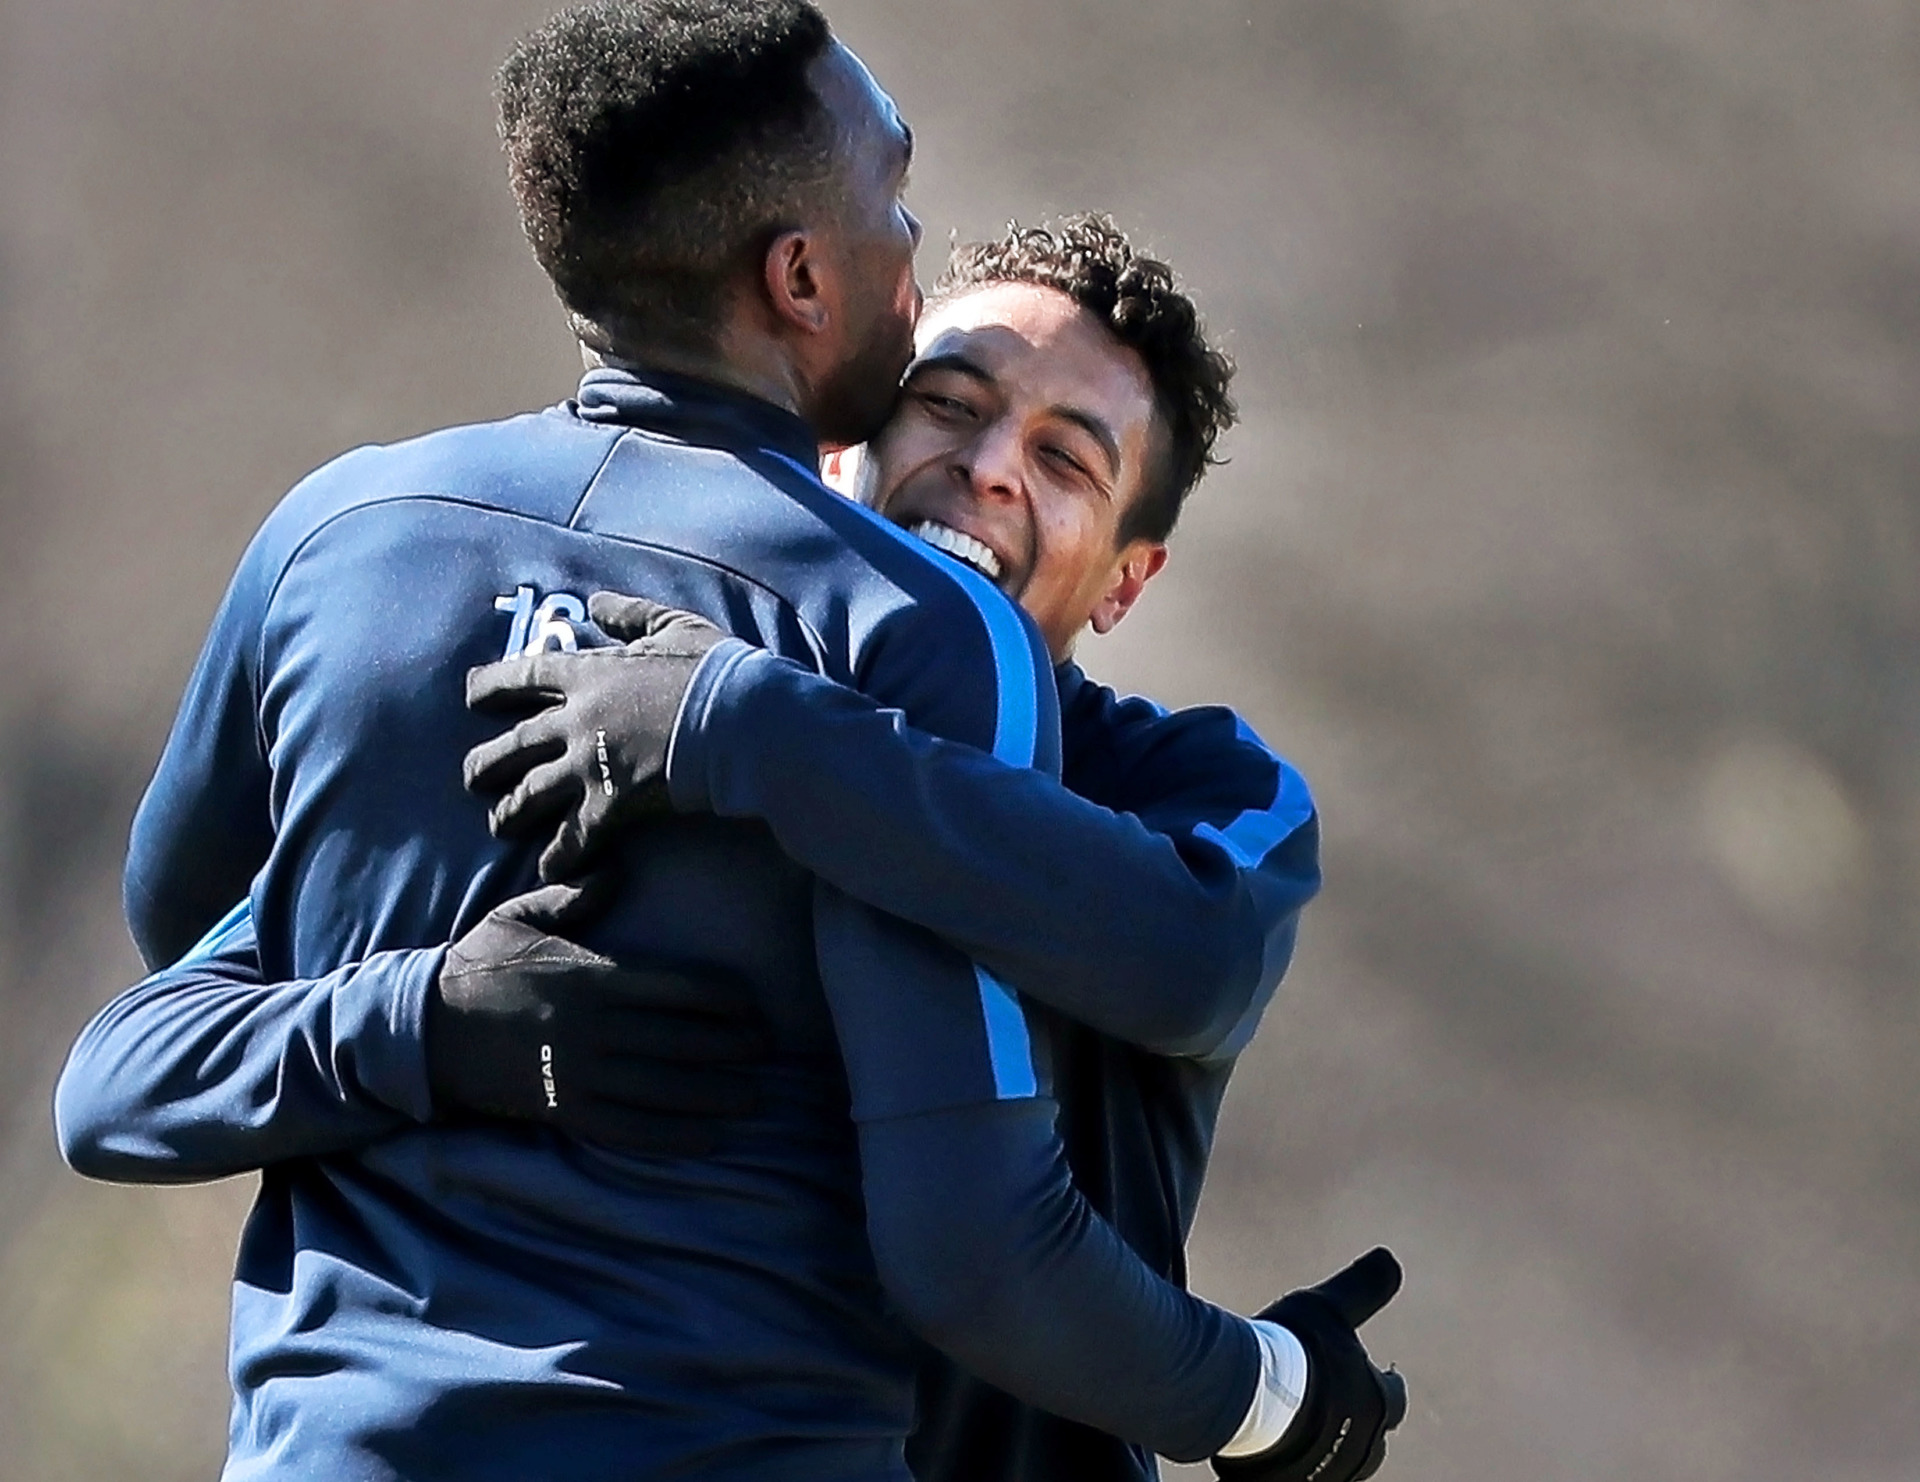 <strong>Memphis 901 FC midfielder Raul Gonzalez III celebrates with forward Heviel Cordoves (left) after scoring a goal during an exhibition game against the University of Memphis soccer team at the U of M south campus on Feb. 9, 2019.</strong> (Jim Weber/Daily Memphian)